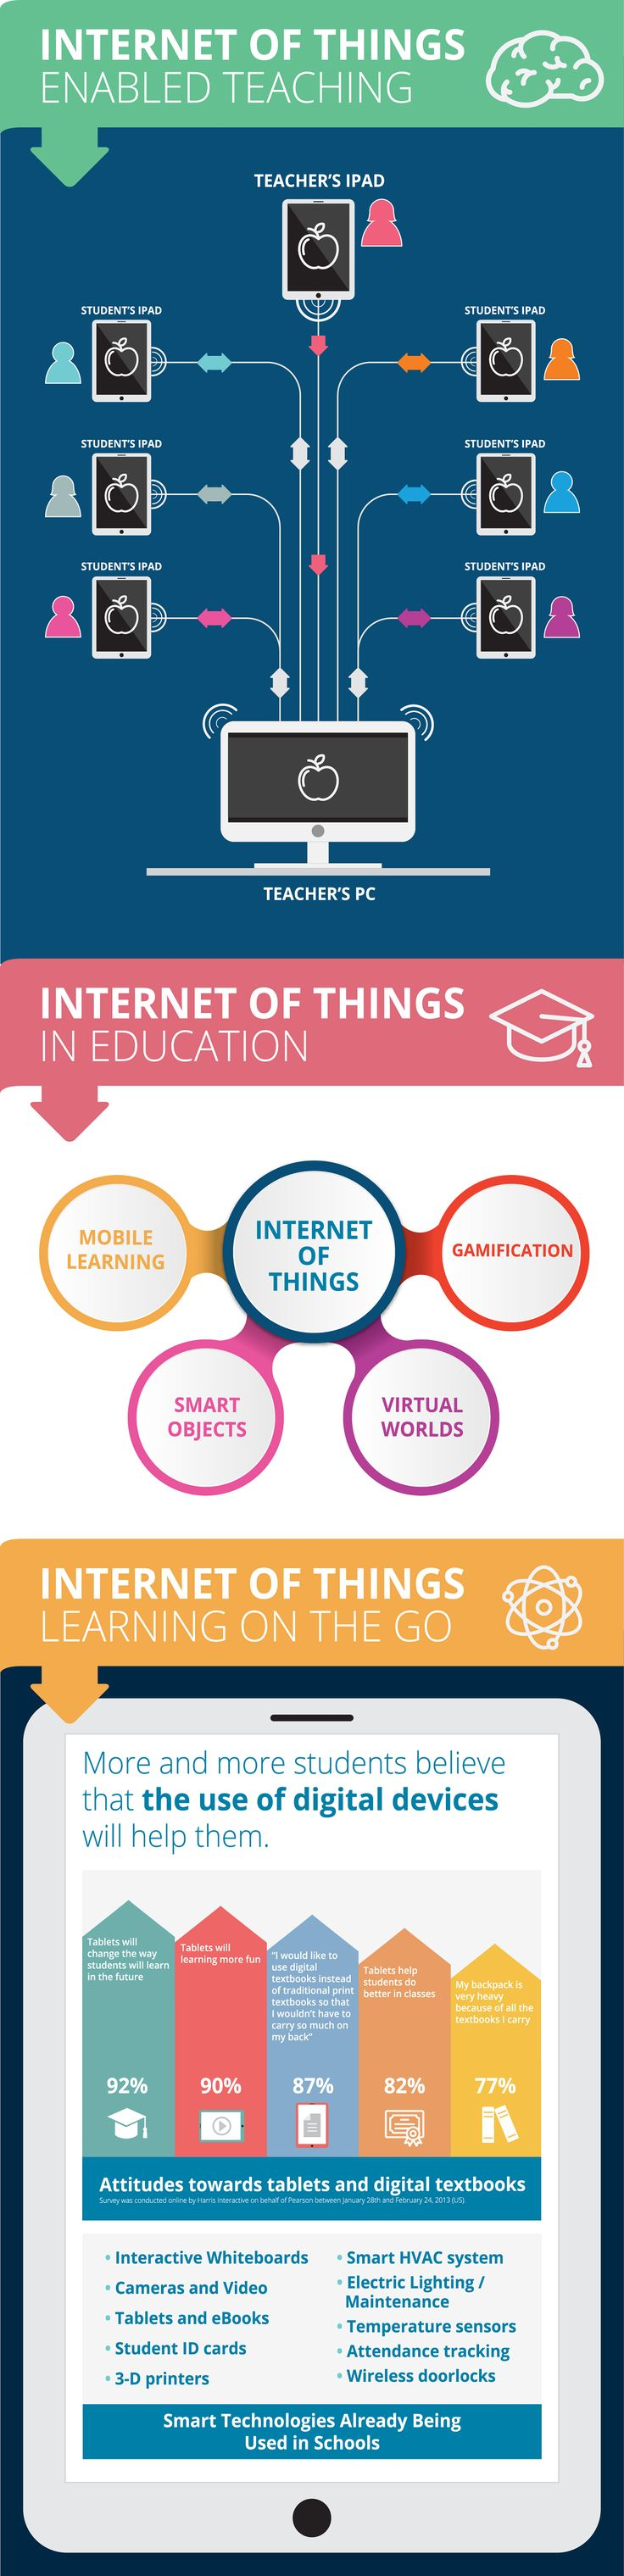 Internet of Things in the Classroom Infographic - http://elearninginfographics.com/internet-of-things-in-the-classroom-infographic/